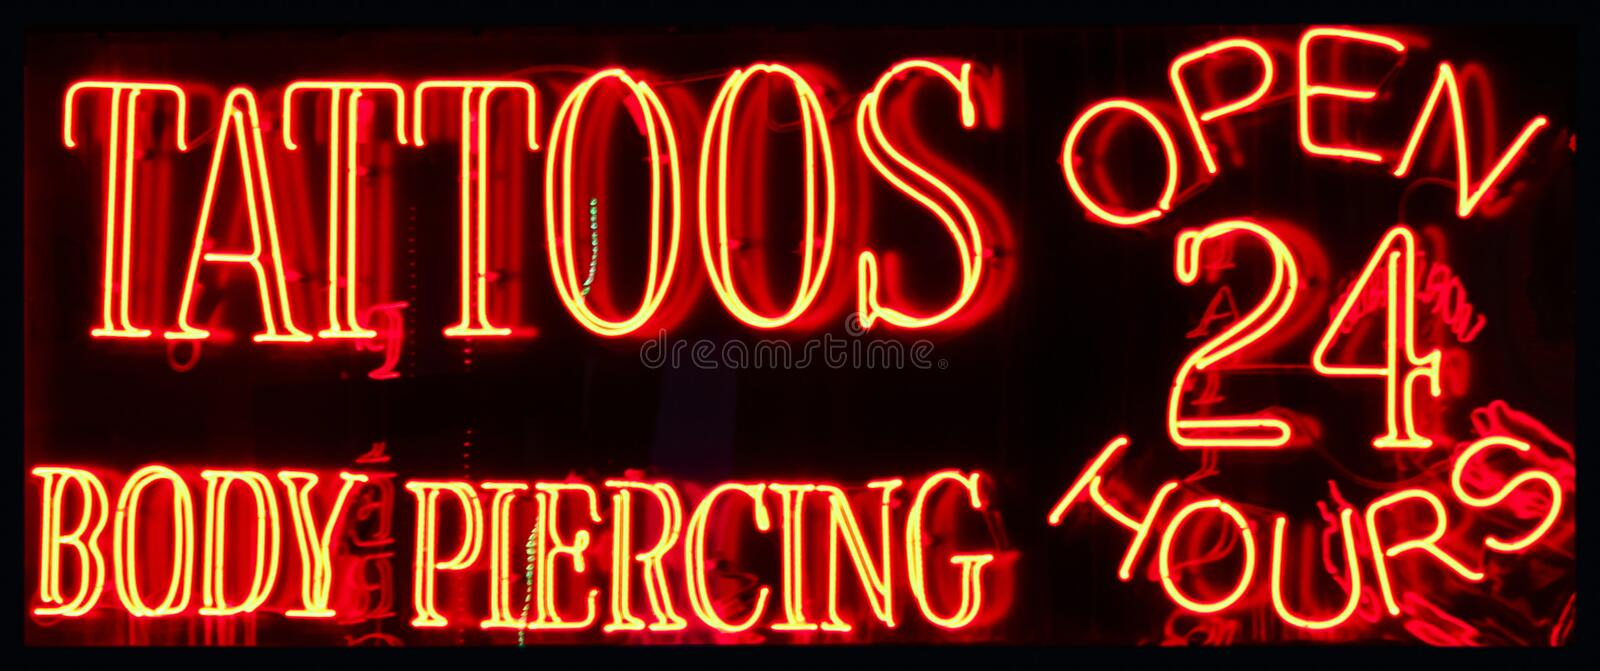 Tattoo And Body Piercing Shop Stock Image Image Of Ideas And Designs